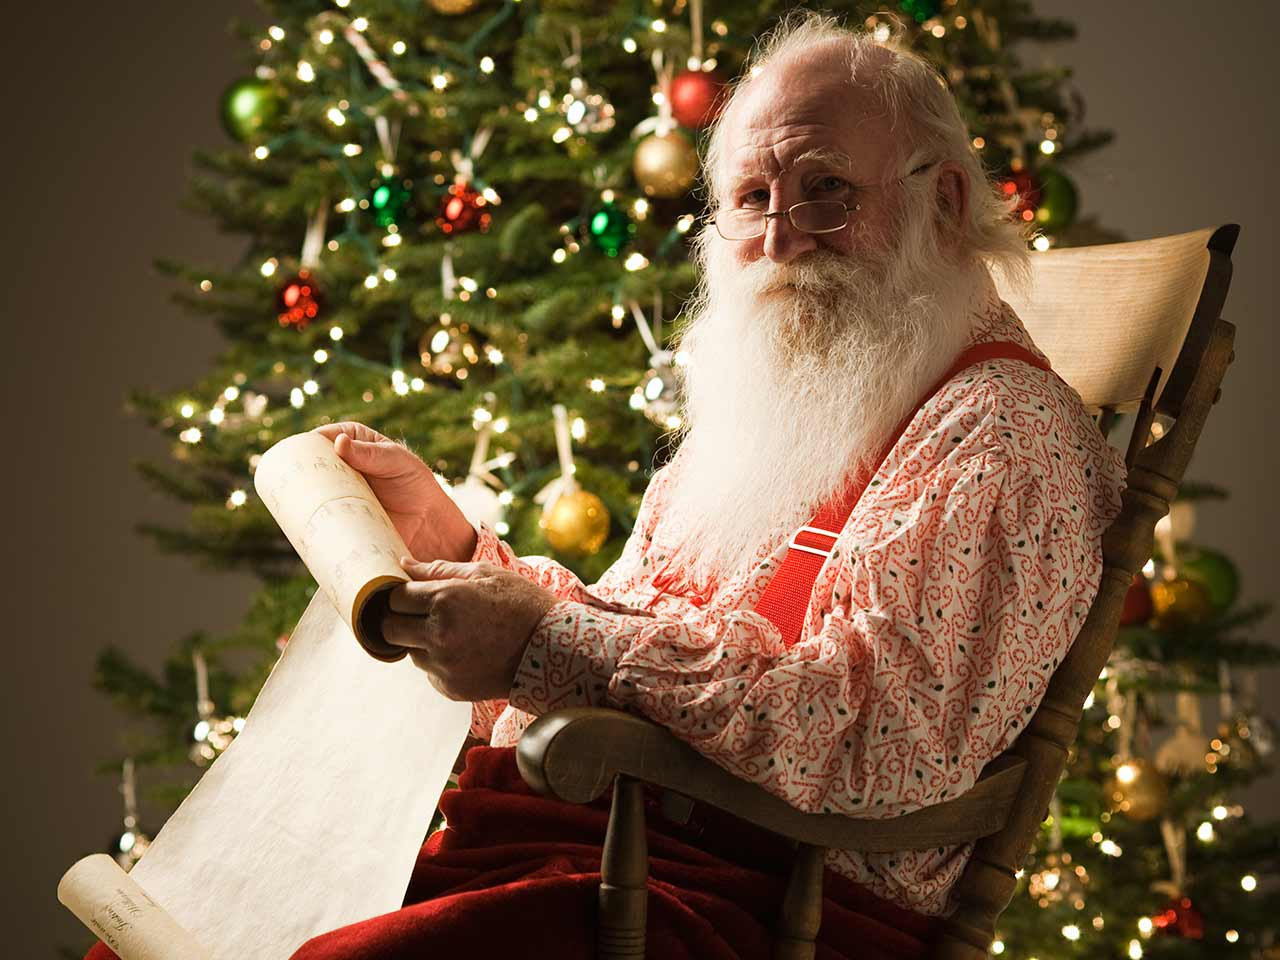 Santa Claus checking his list | RubberBall Productions/Getty Images